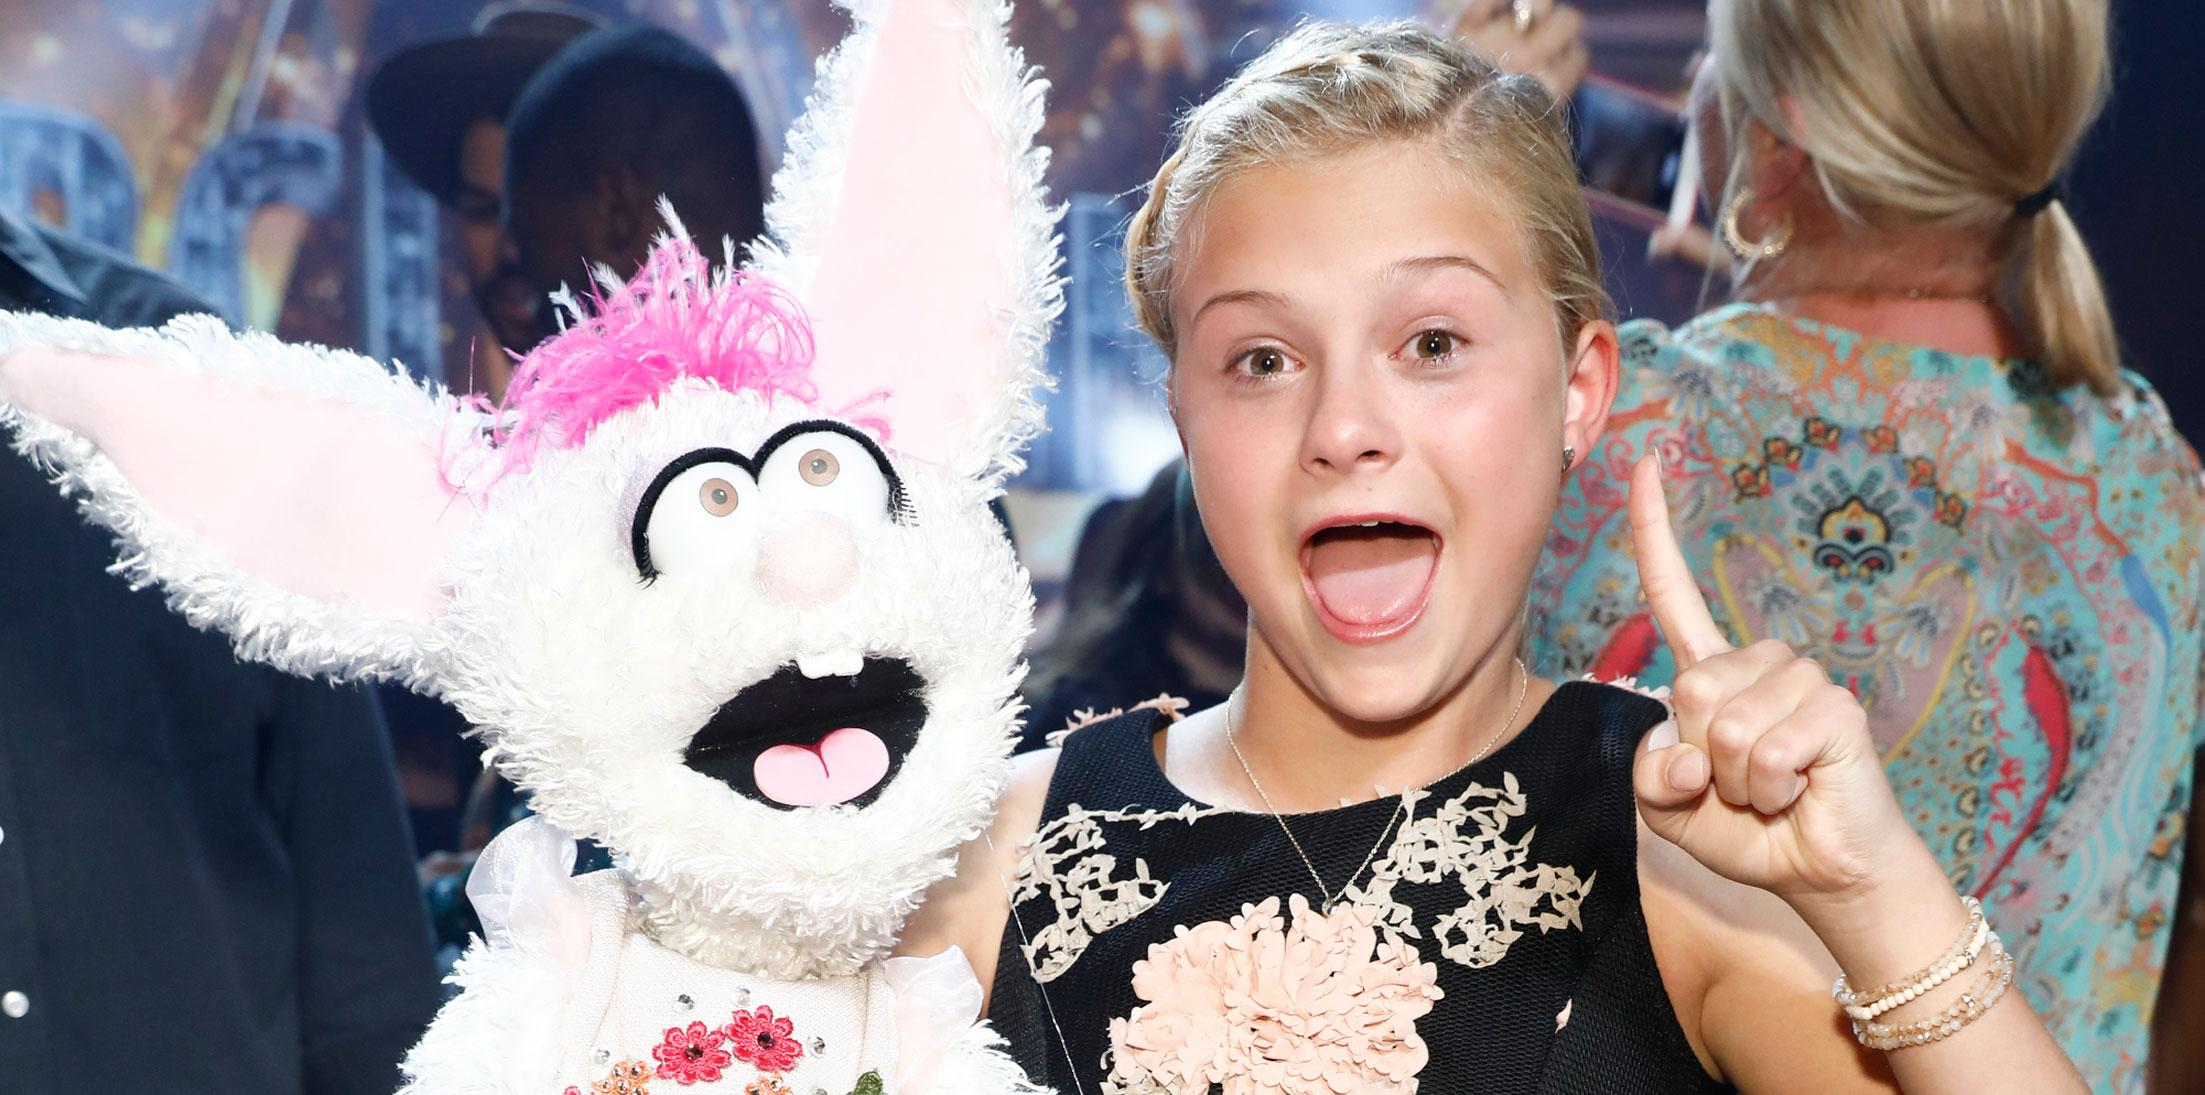 Americas Got Talent Darcie Lynne Farmer Wins Season 12 Long